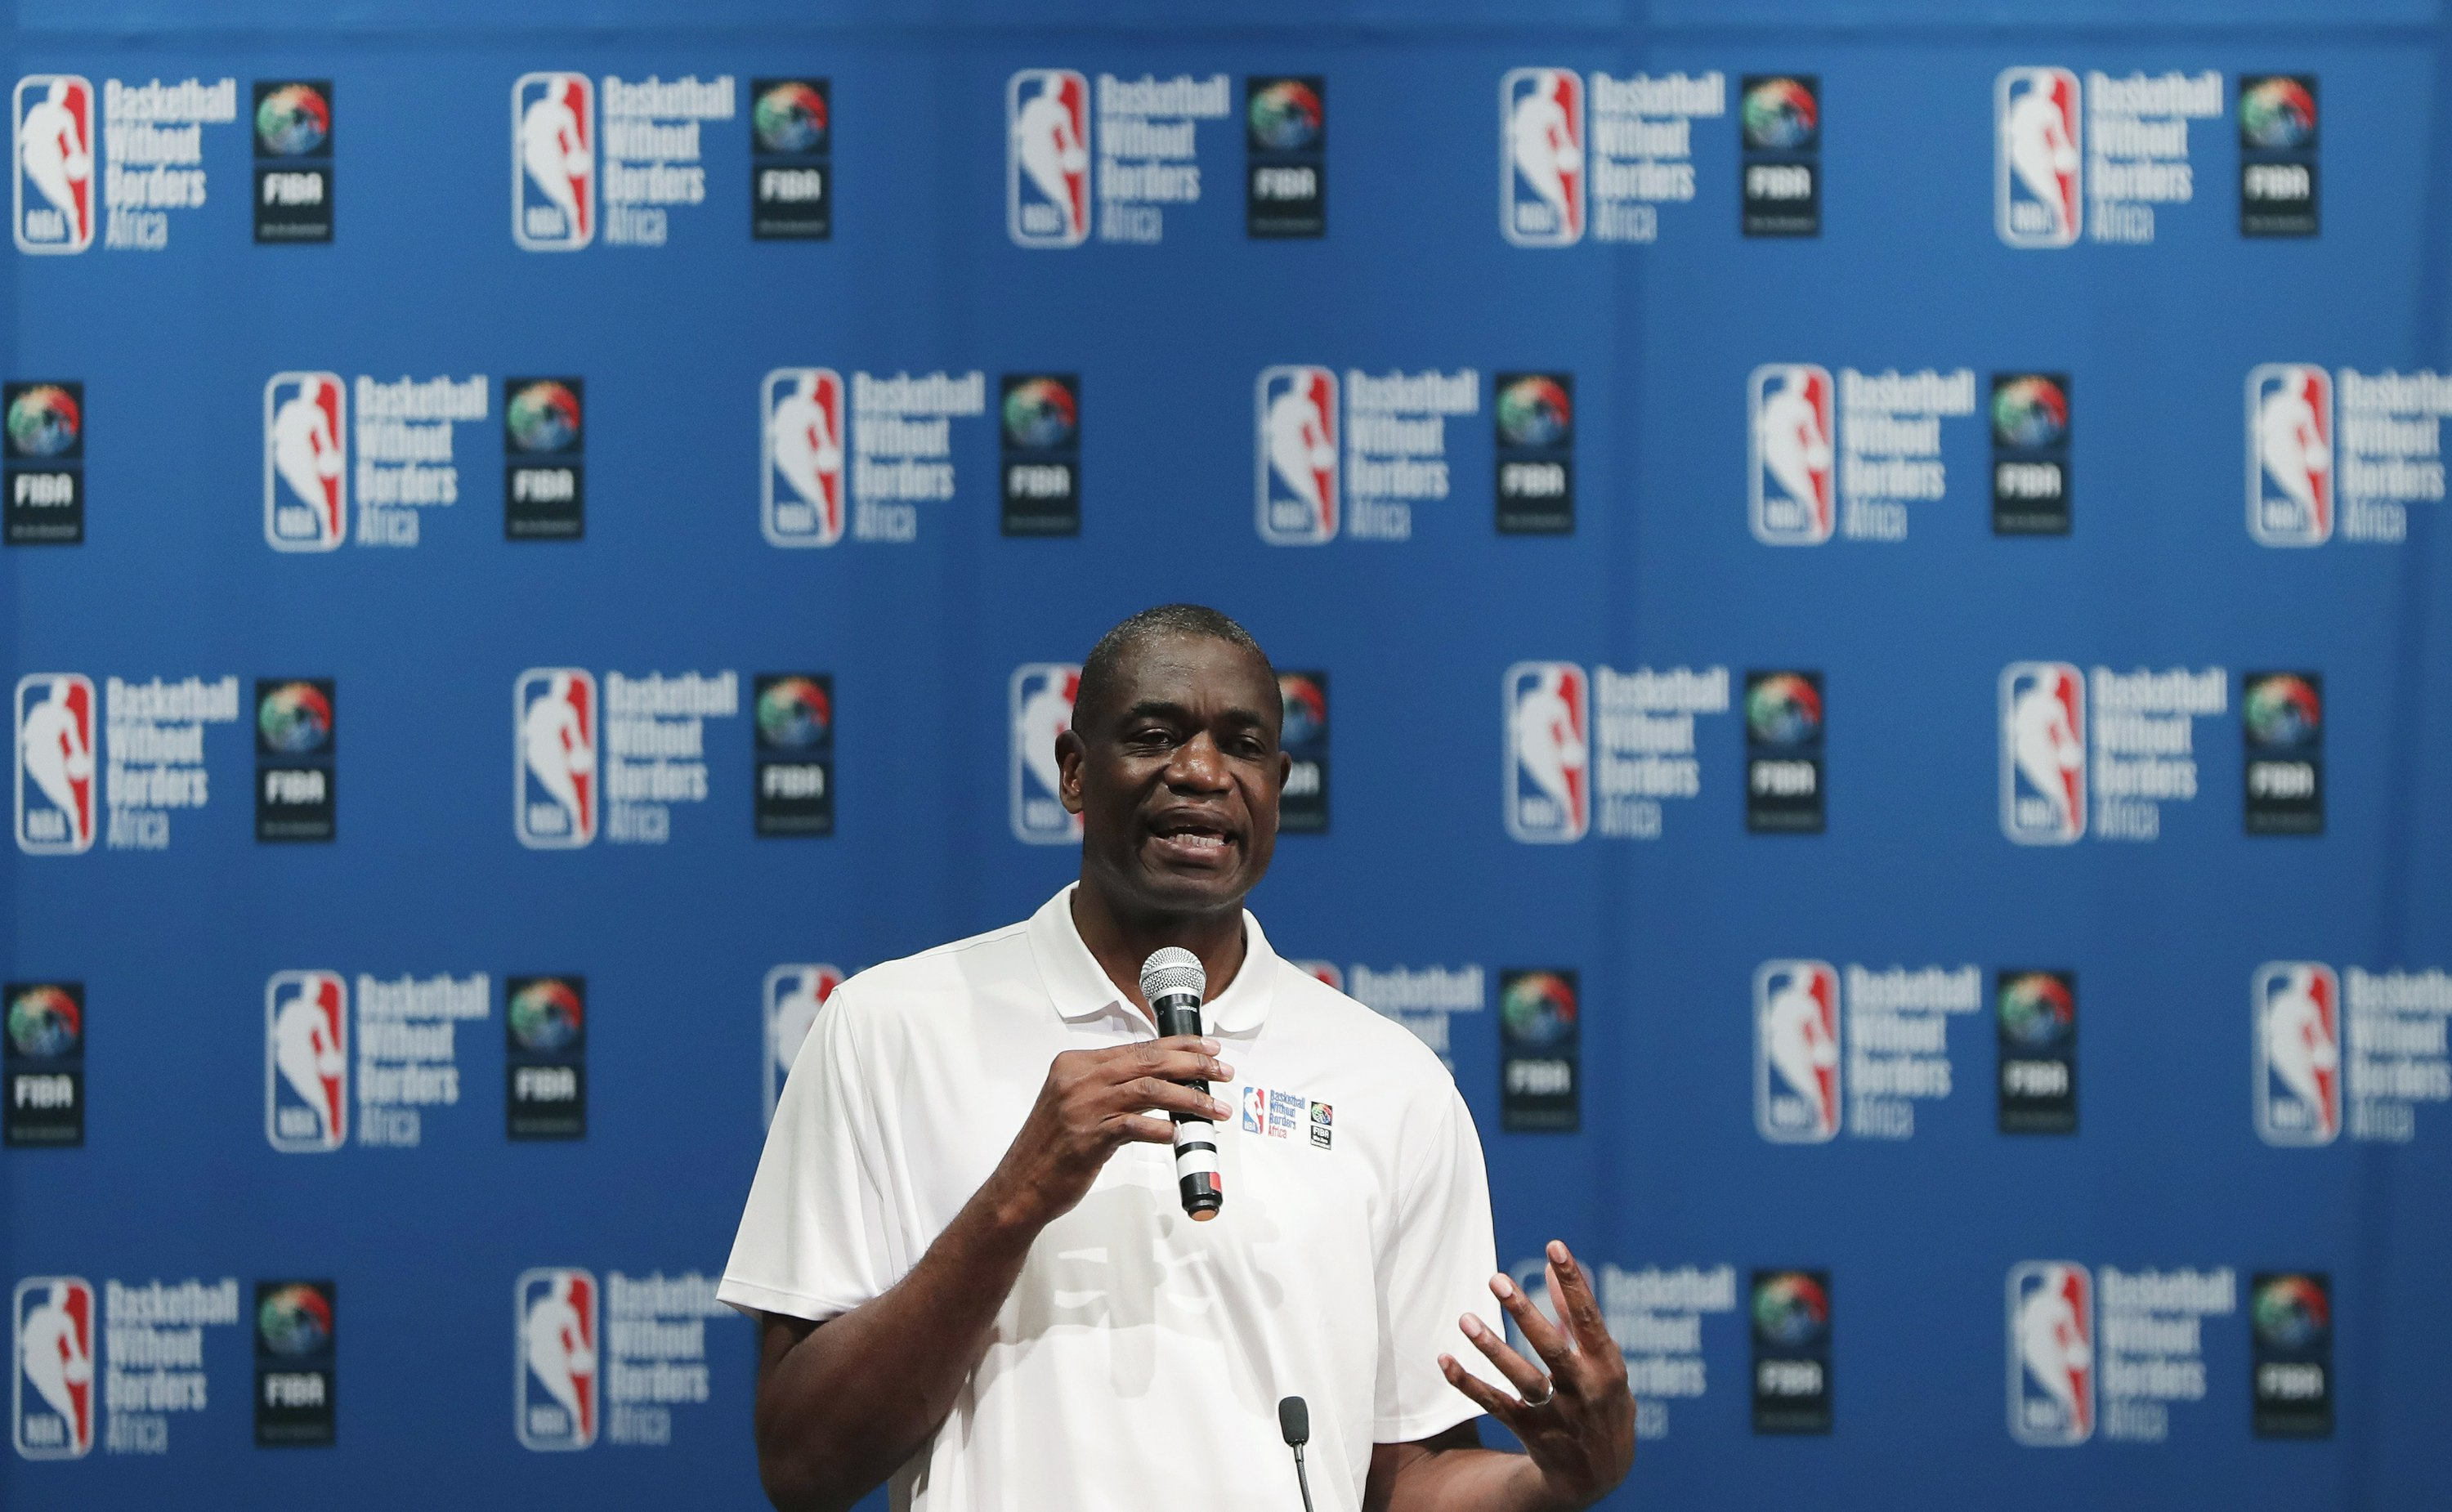 US officials recruit Dikembe Mutombo for Ebola messages